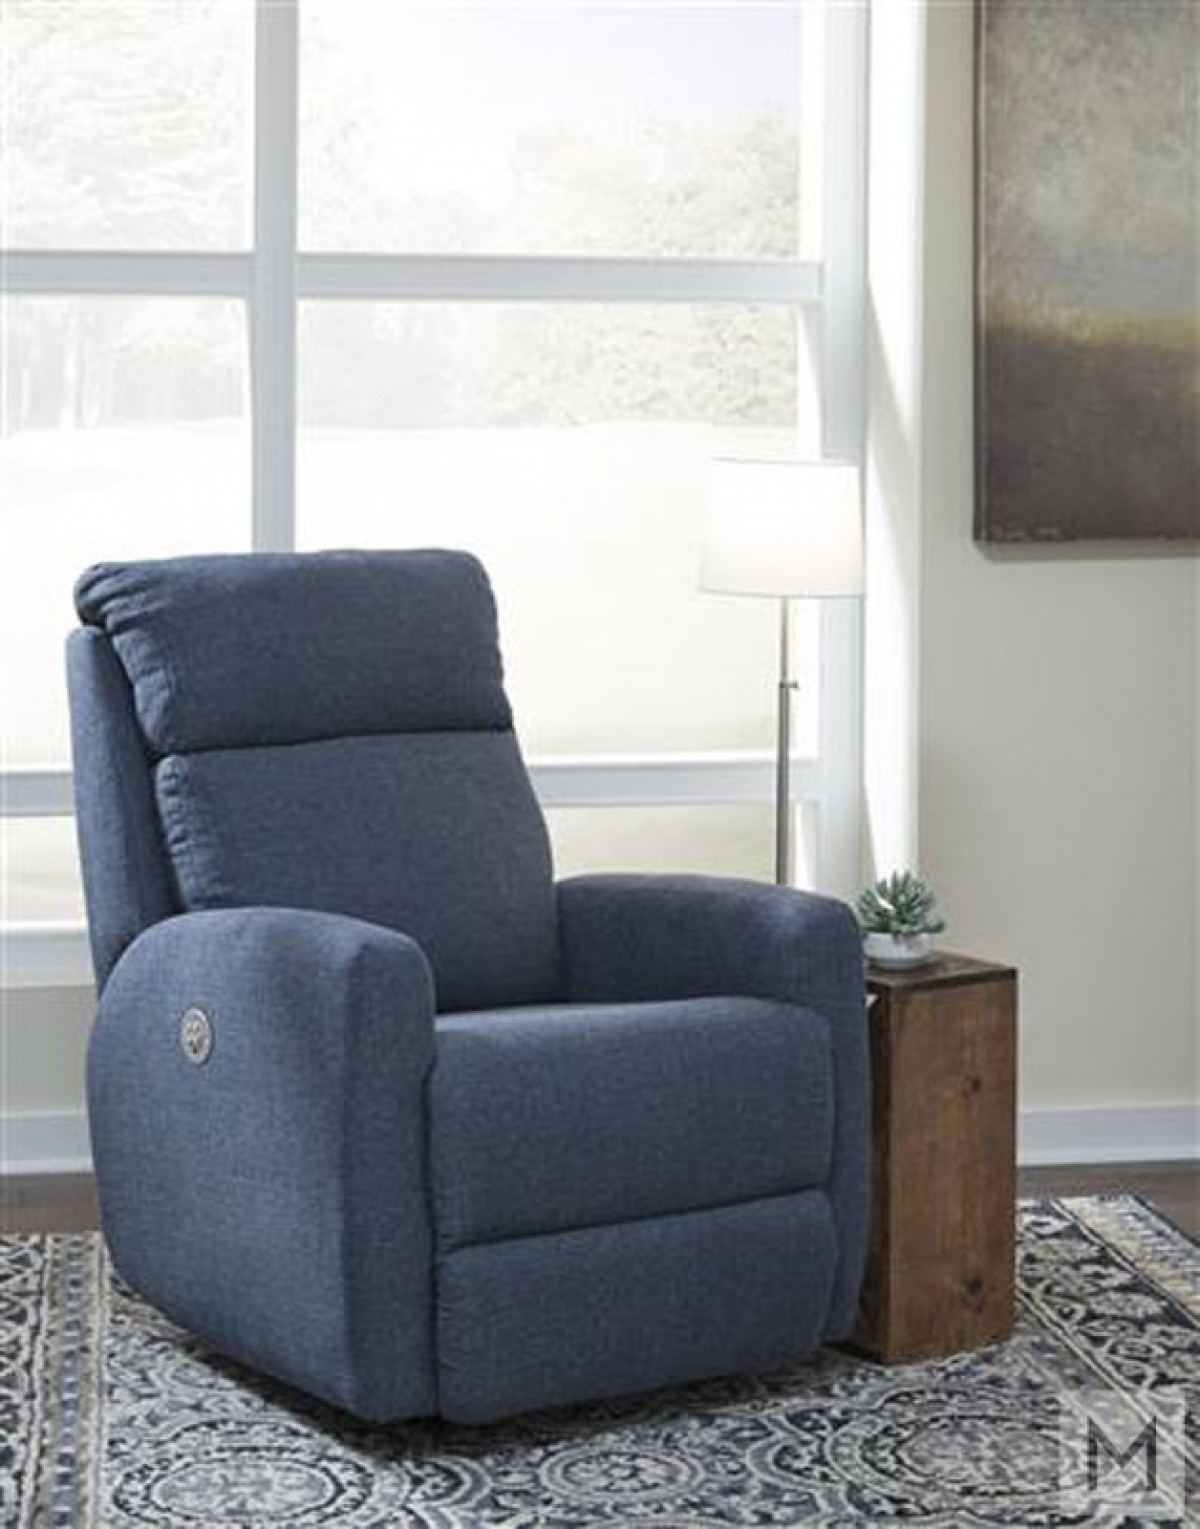 M Collection Primo Upholstered Recliner in Gray